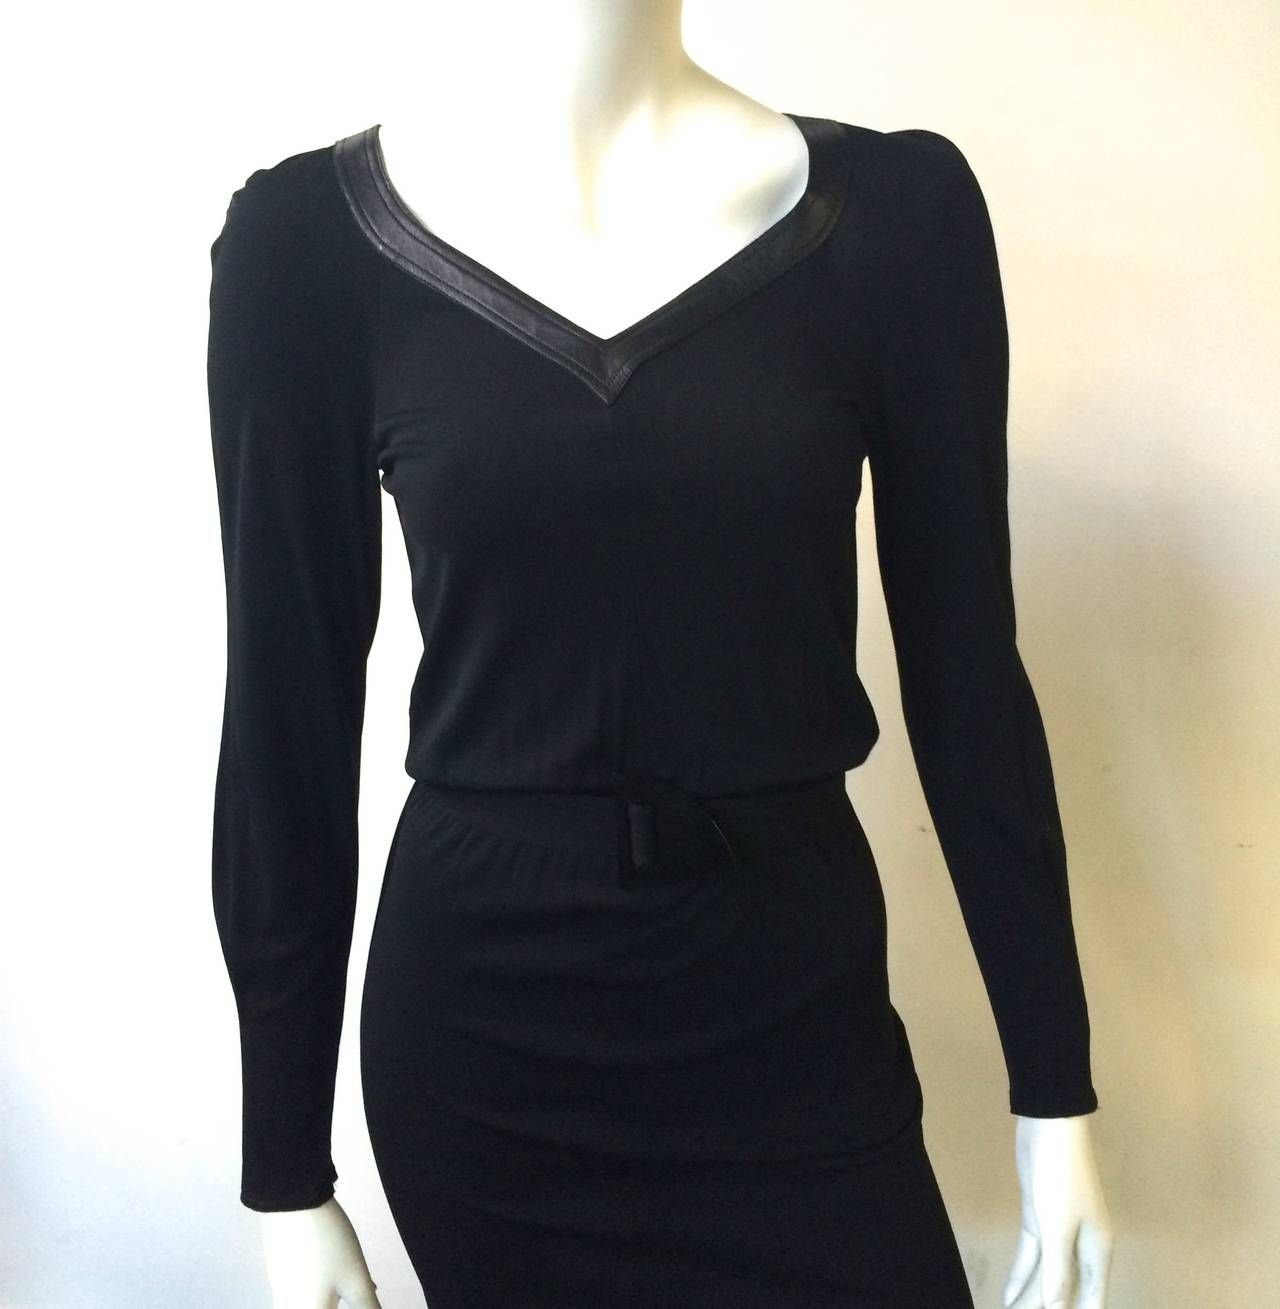 Jean Muir 80s For Neiman Marcus Dress Size 4 6 Image 2 Designer Evening Dresses Neiman Marcus Dresses Jean Muir